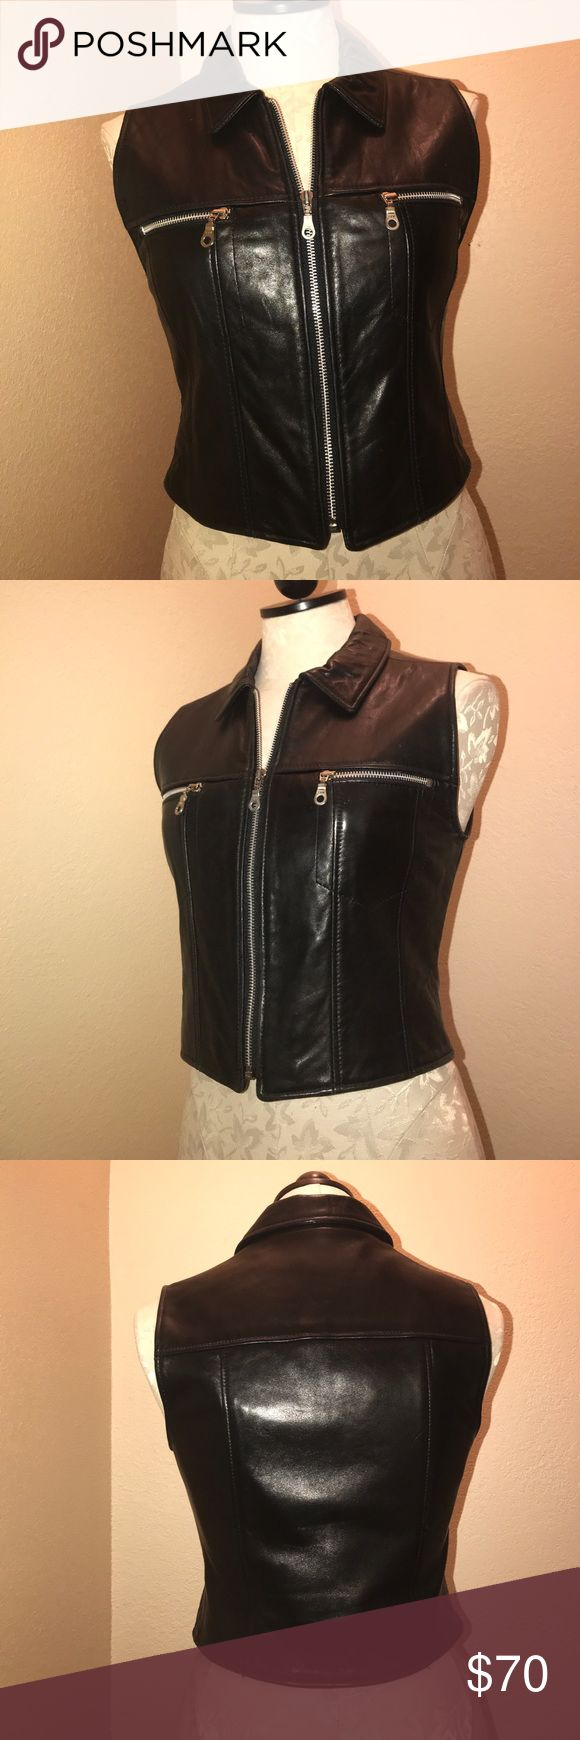 Bebe motorcycle leather vest Super cute vintage motorcycle vest by Bebe real leather. Size M but can also fit a S.  All reasonable offers will be considered! Jackets & Coats Vests